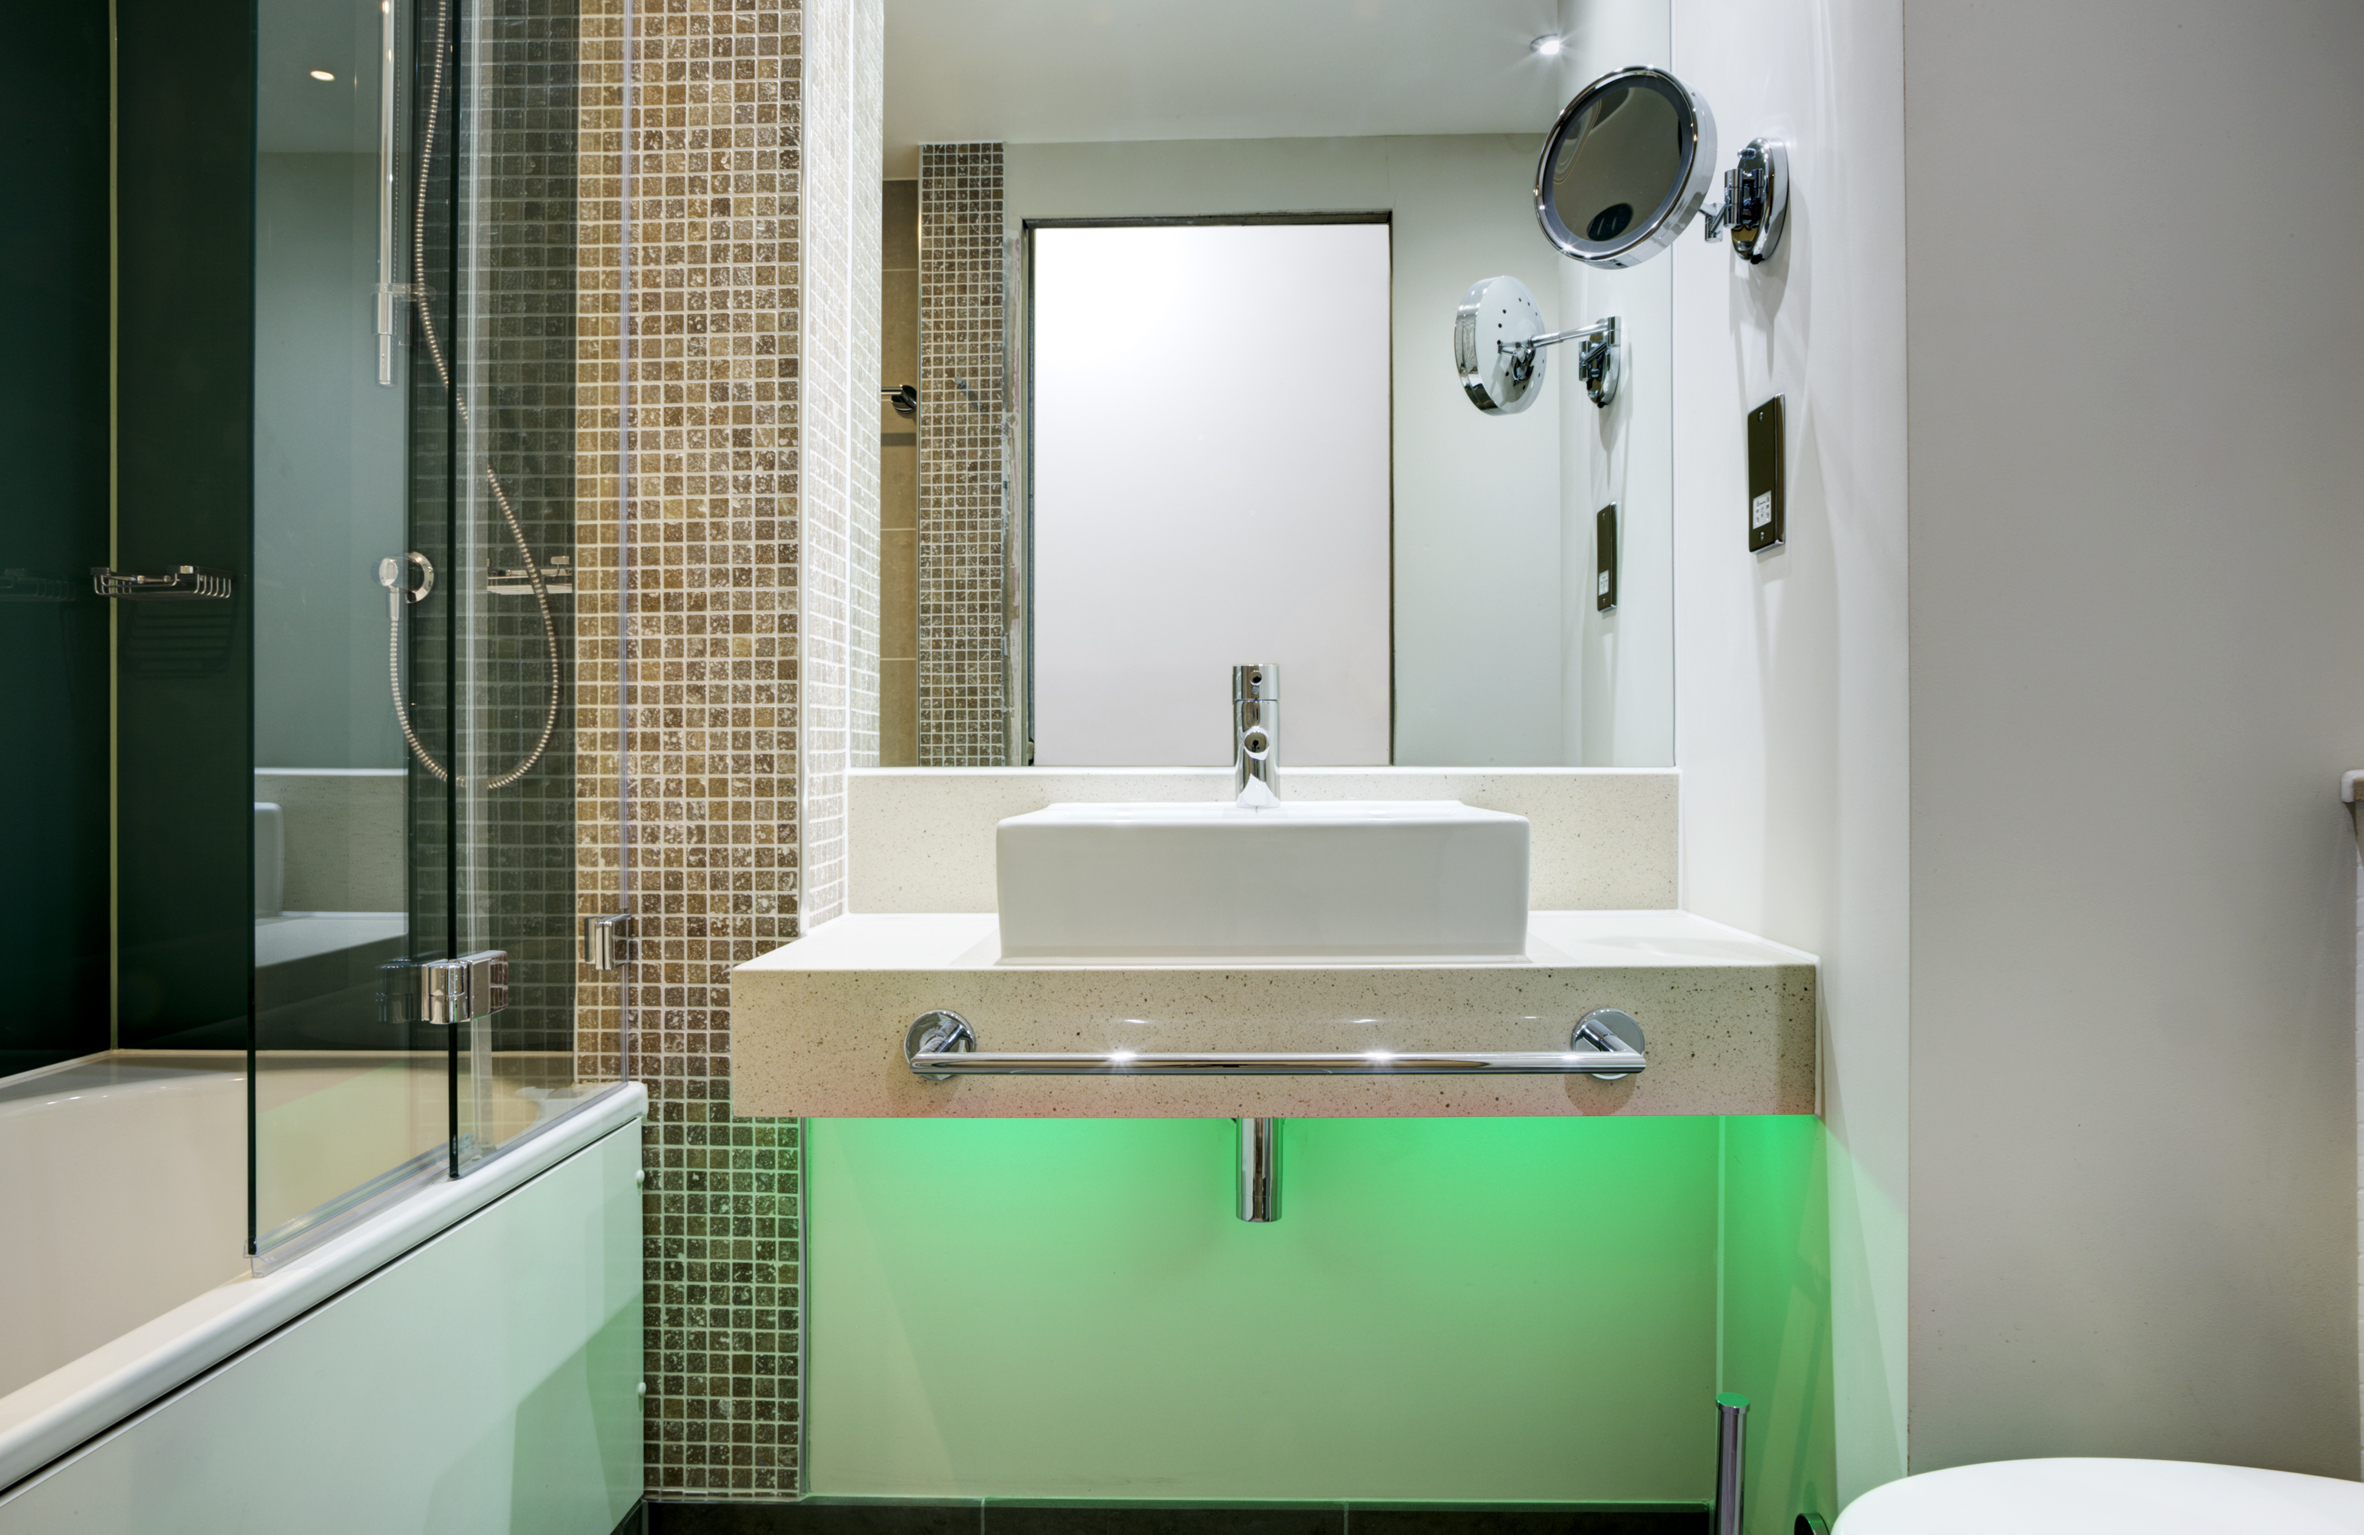 Bespoke enclosures guarantee electrical installation quality in pod  bathrooms